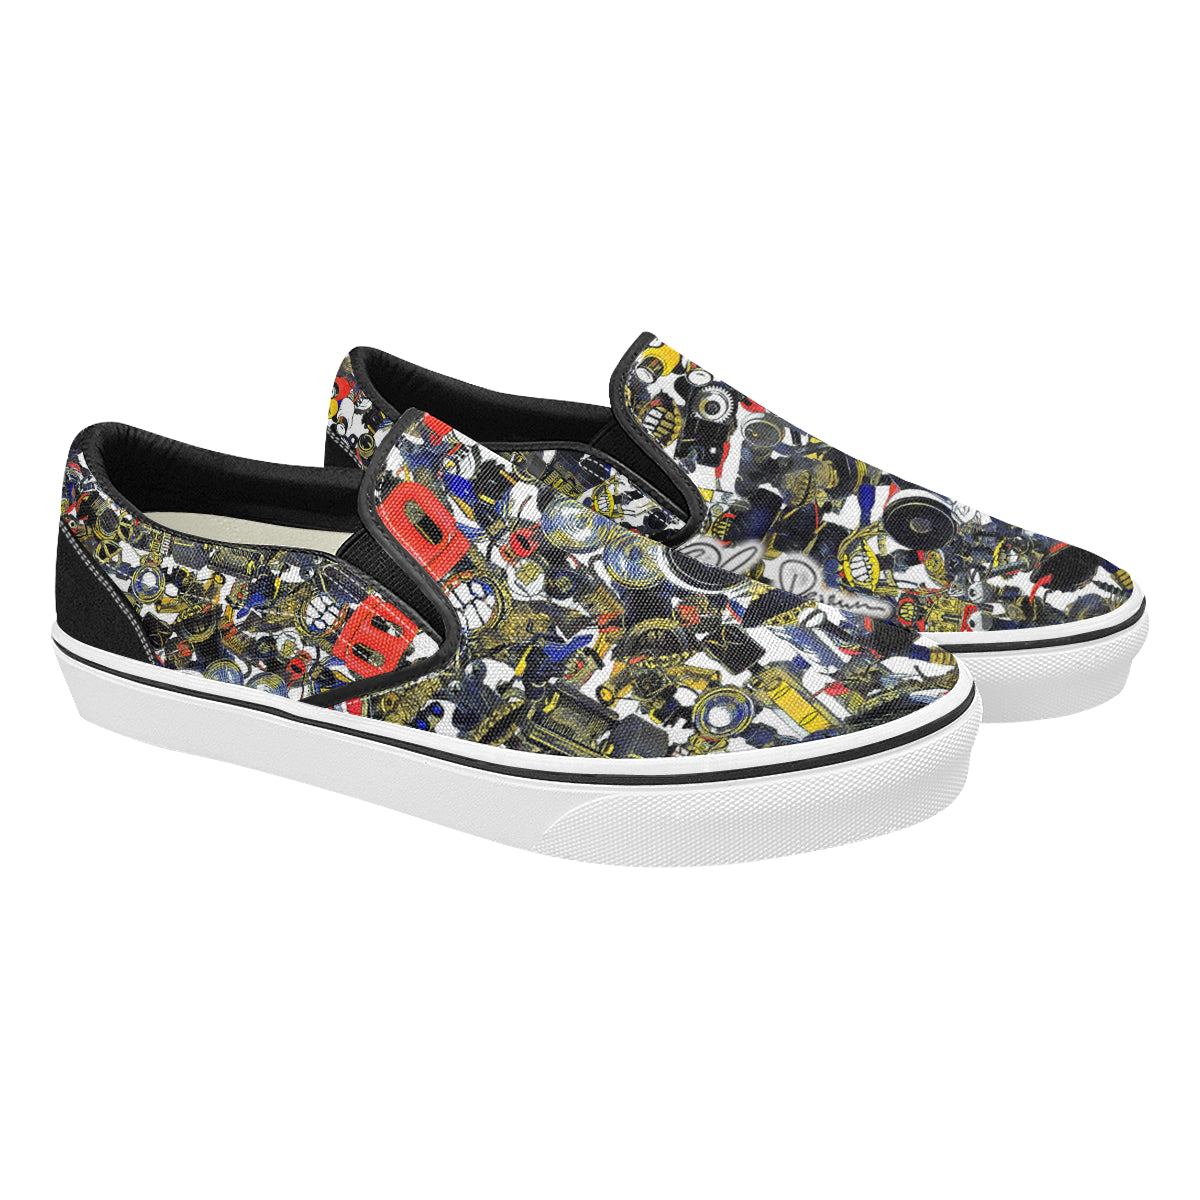 Bierbeach All Over Print Dark Men's Classic Slip-On Sneakers